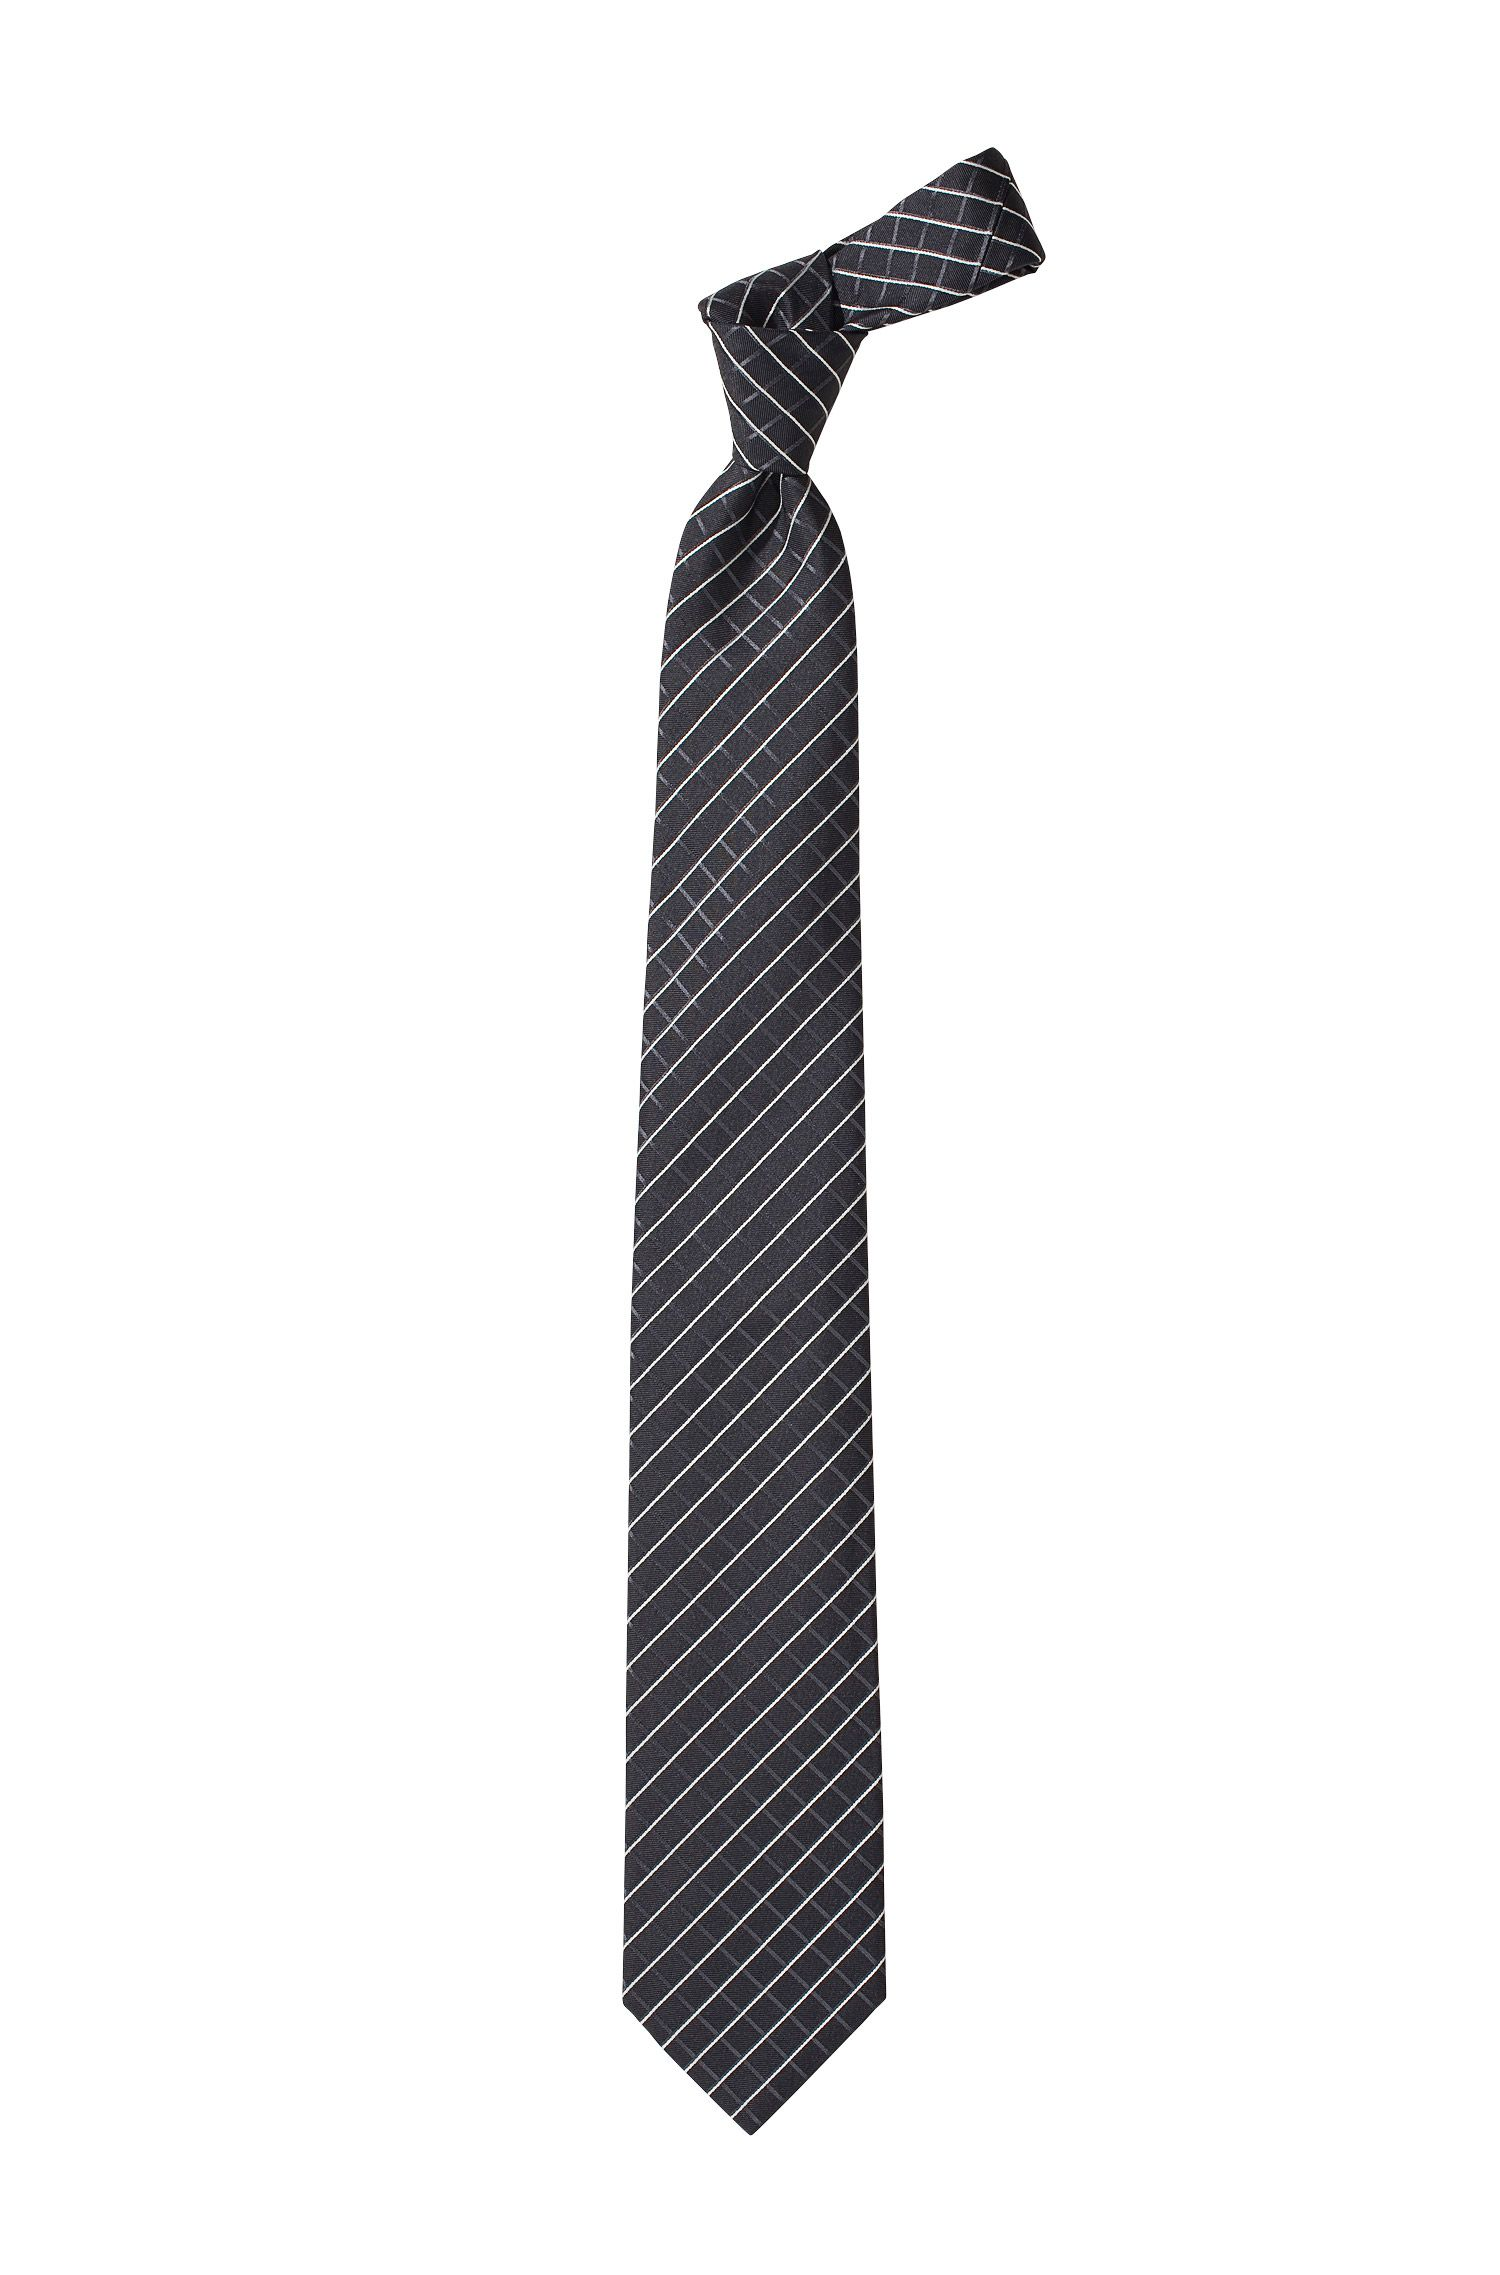 Cravate fashion en soie, Tie cm 7,5